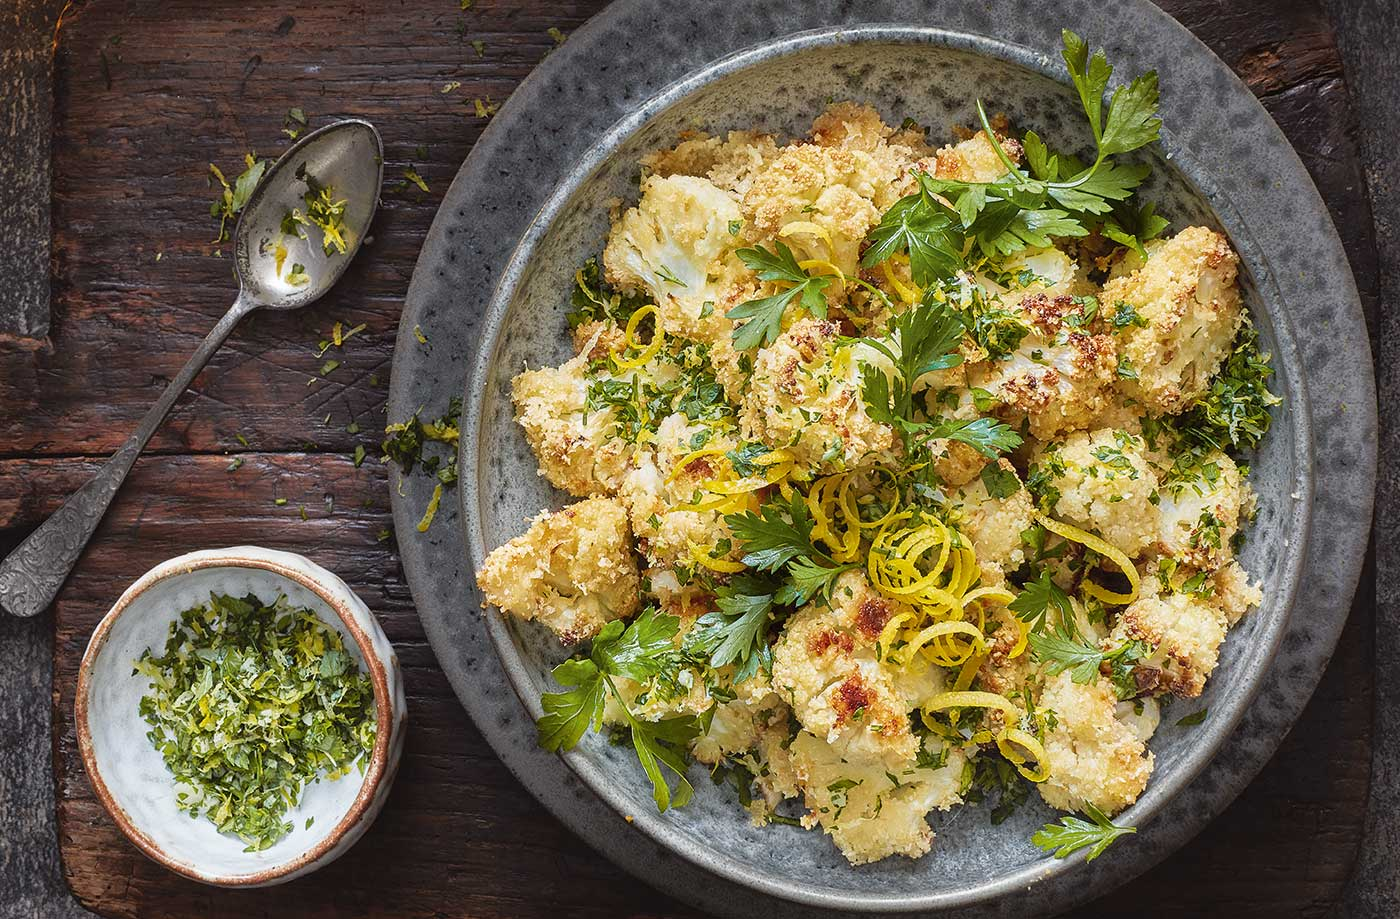 Almond-crusted cauliflower with gremolata recipe